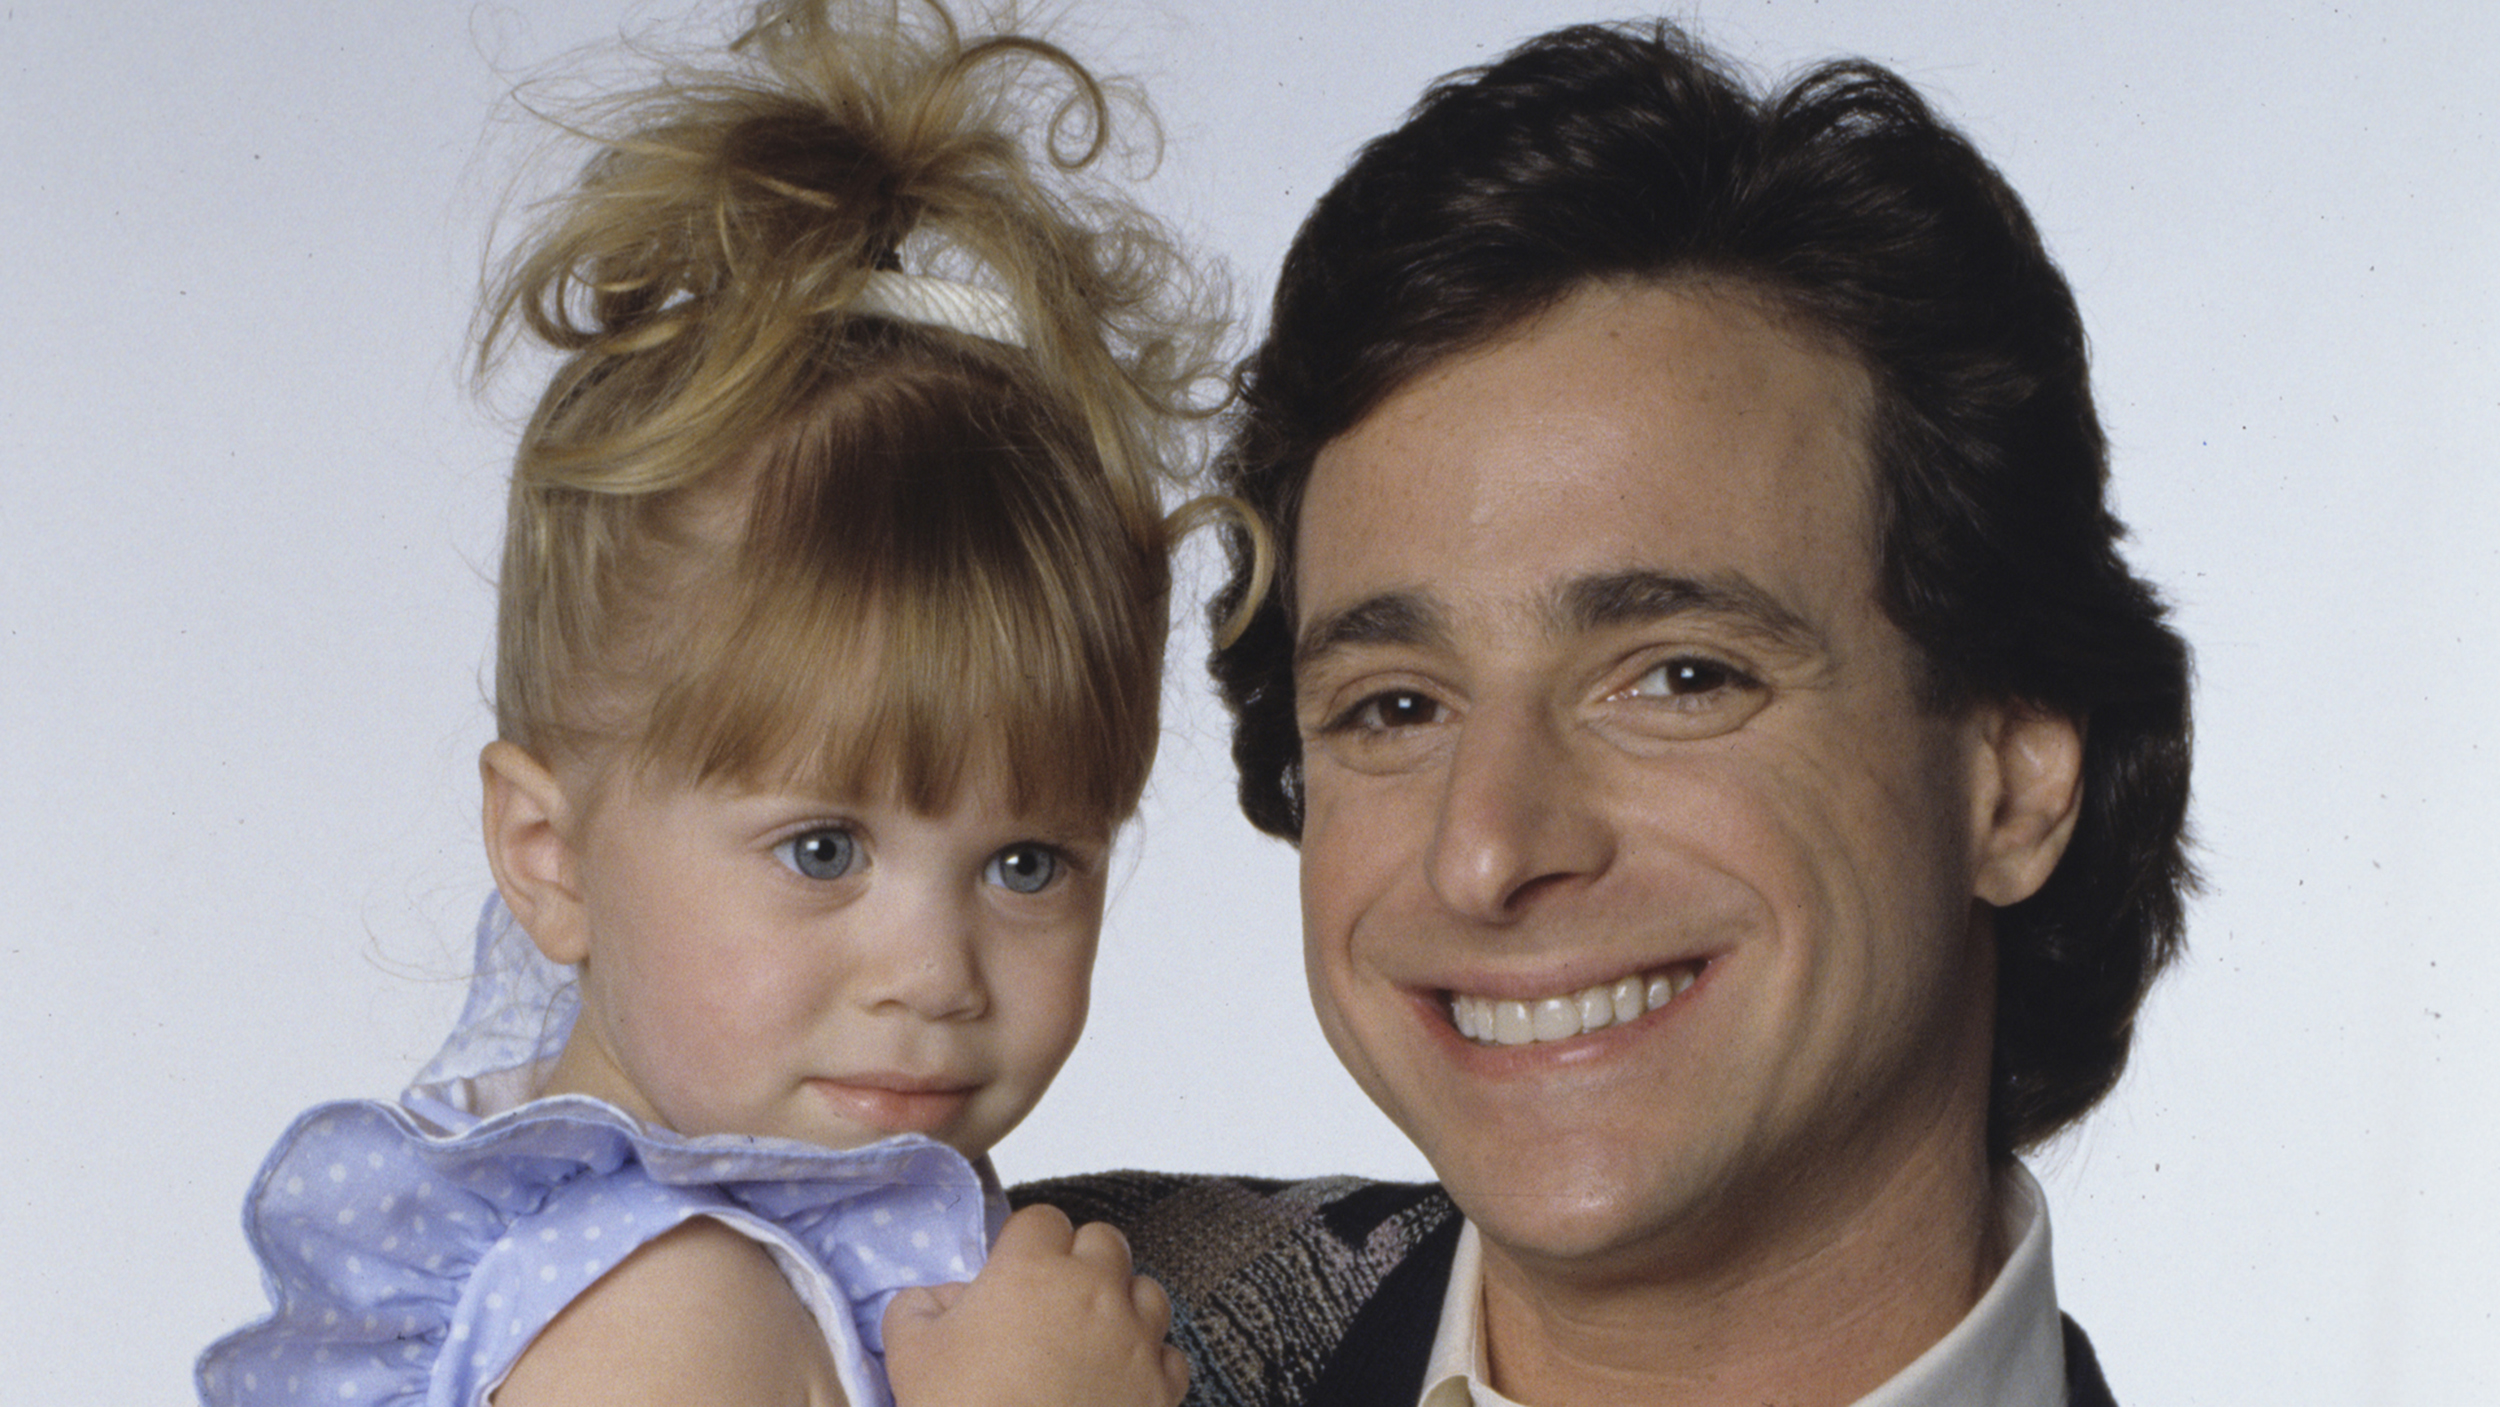 Full House reunion Bob Sa and Ashley Olsen join forces for a